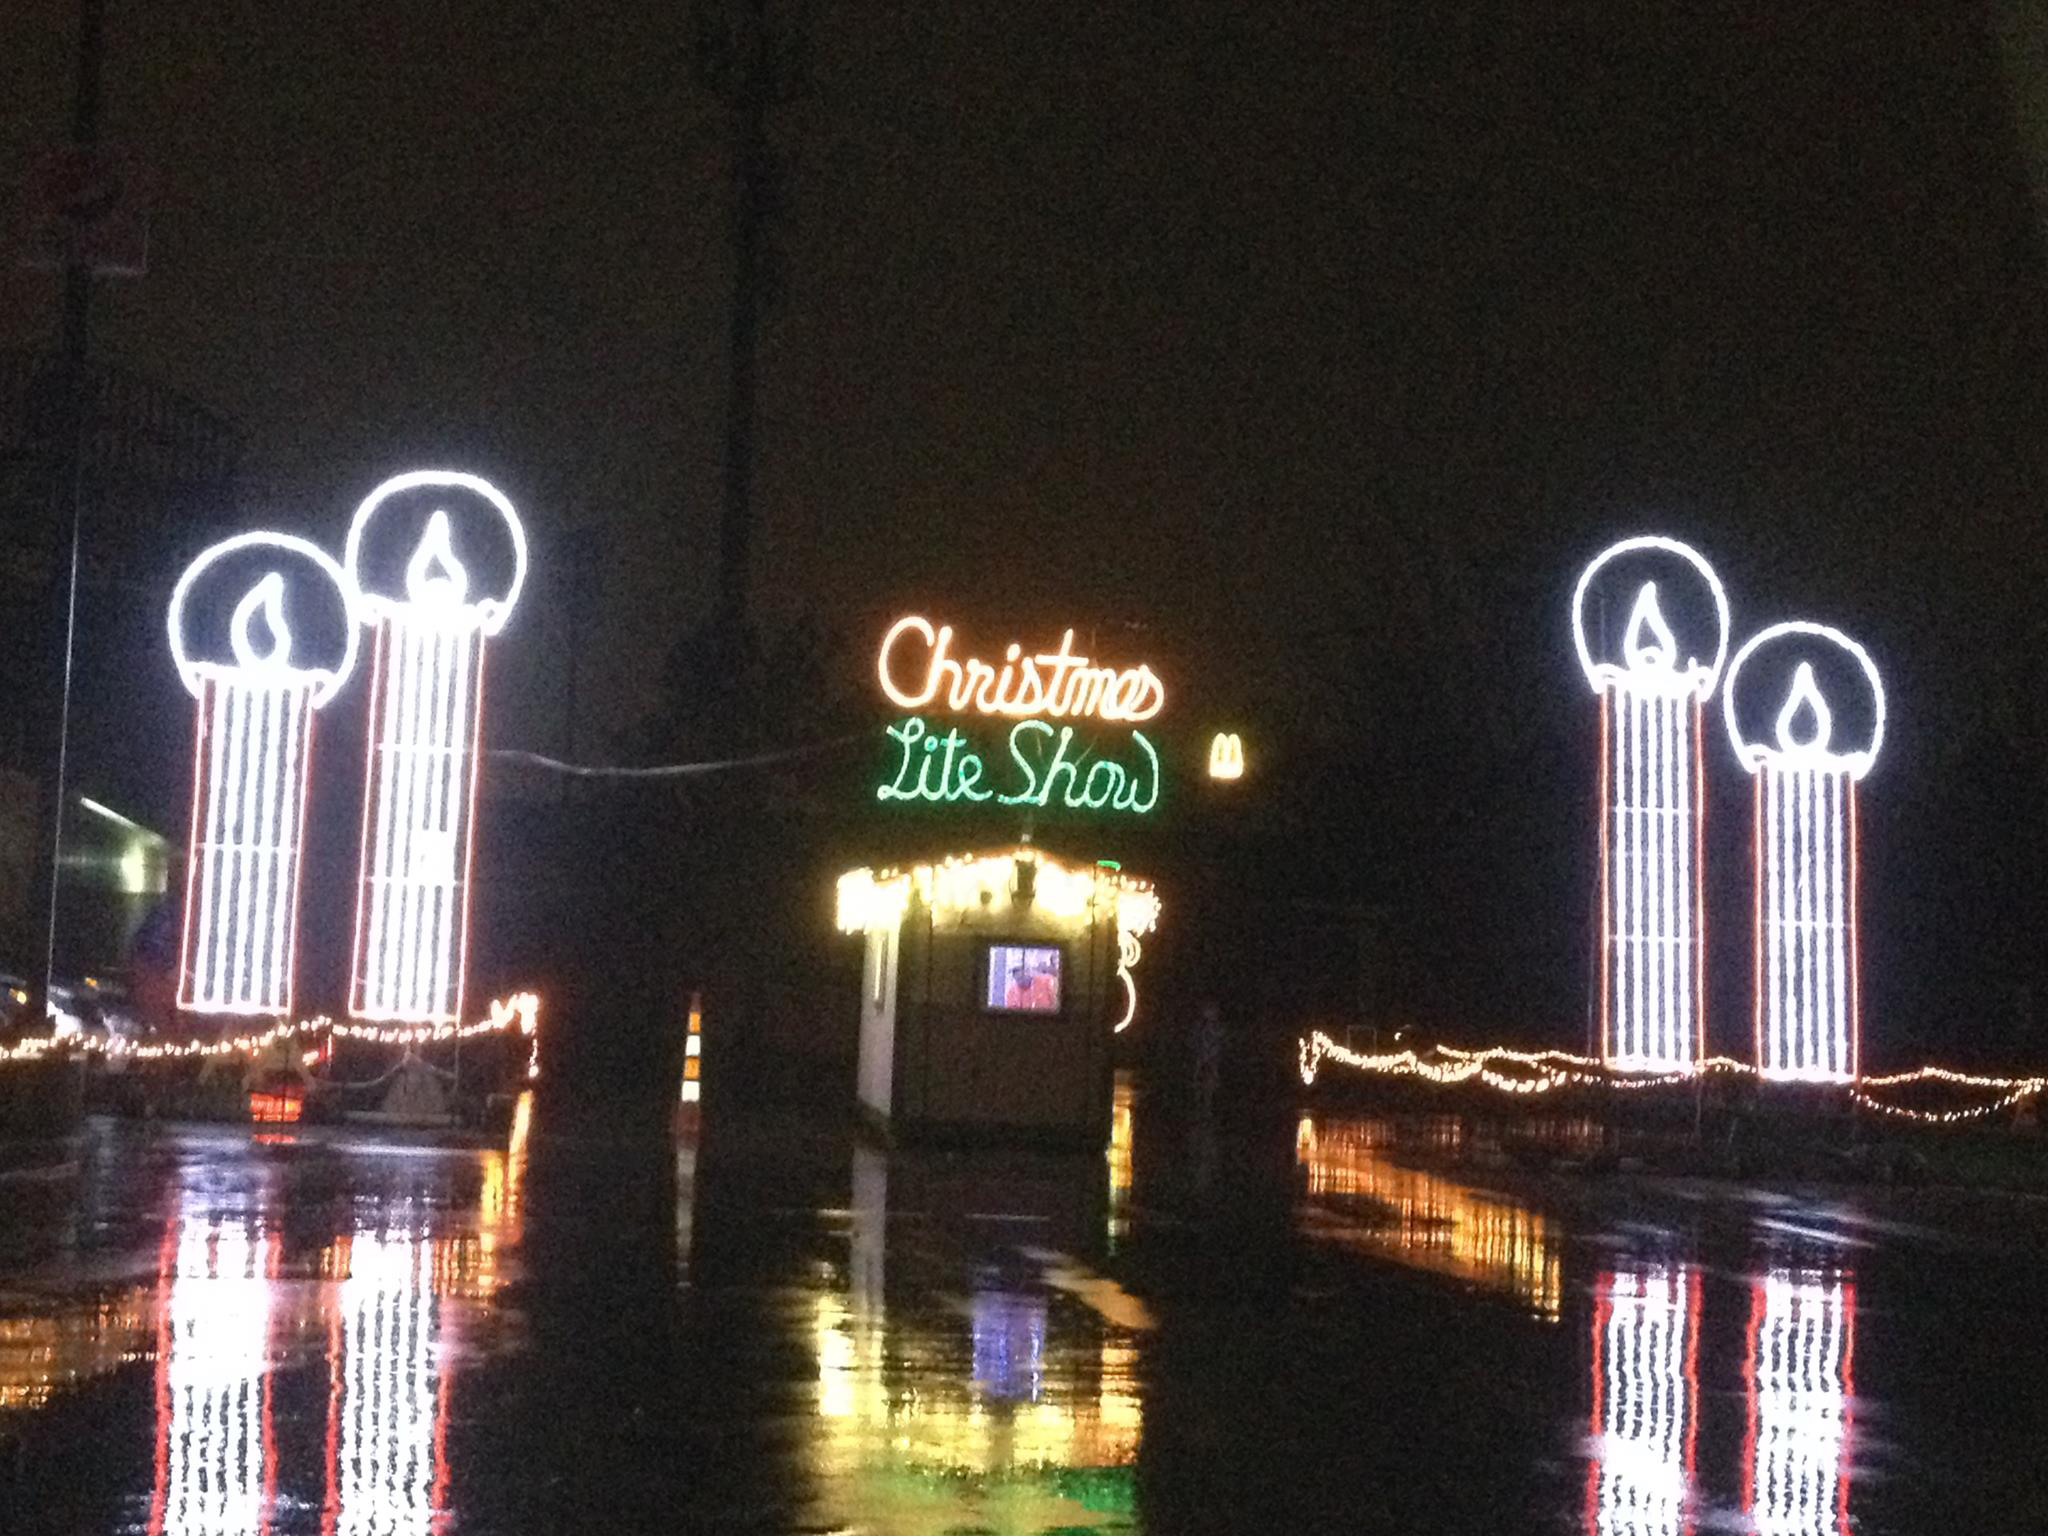 Christmas Lite Show celebrates 20 years of